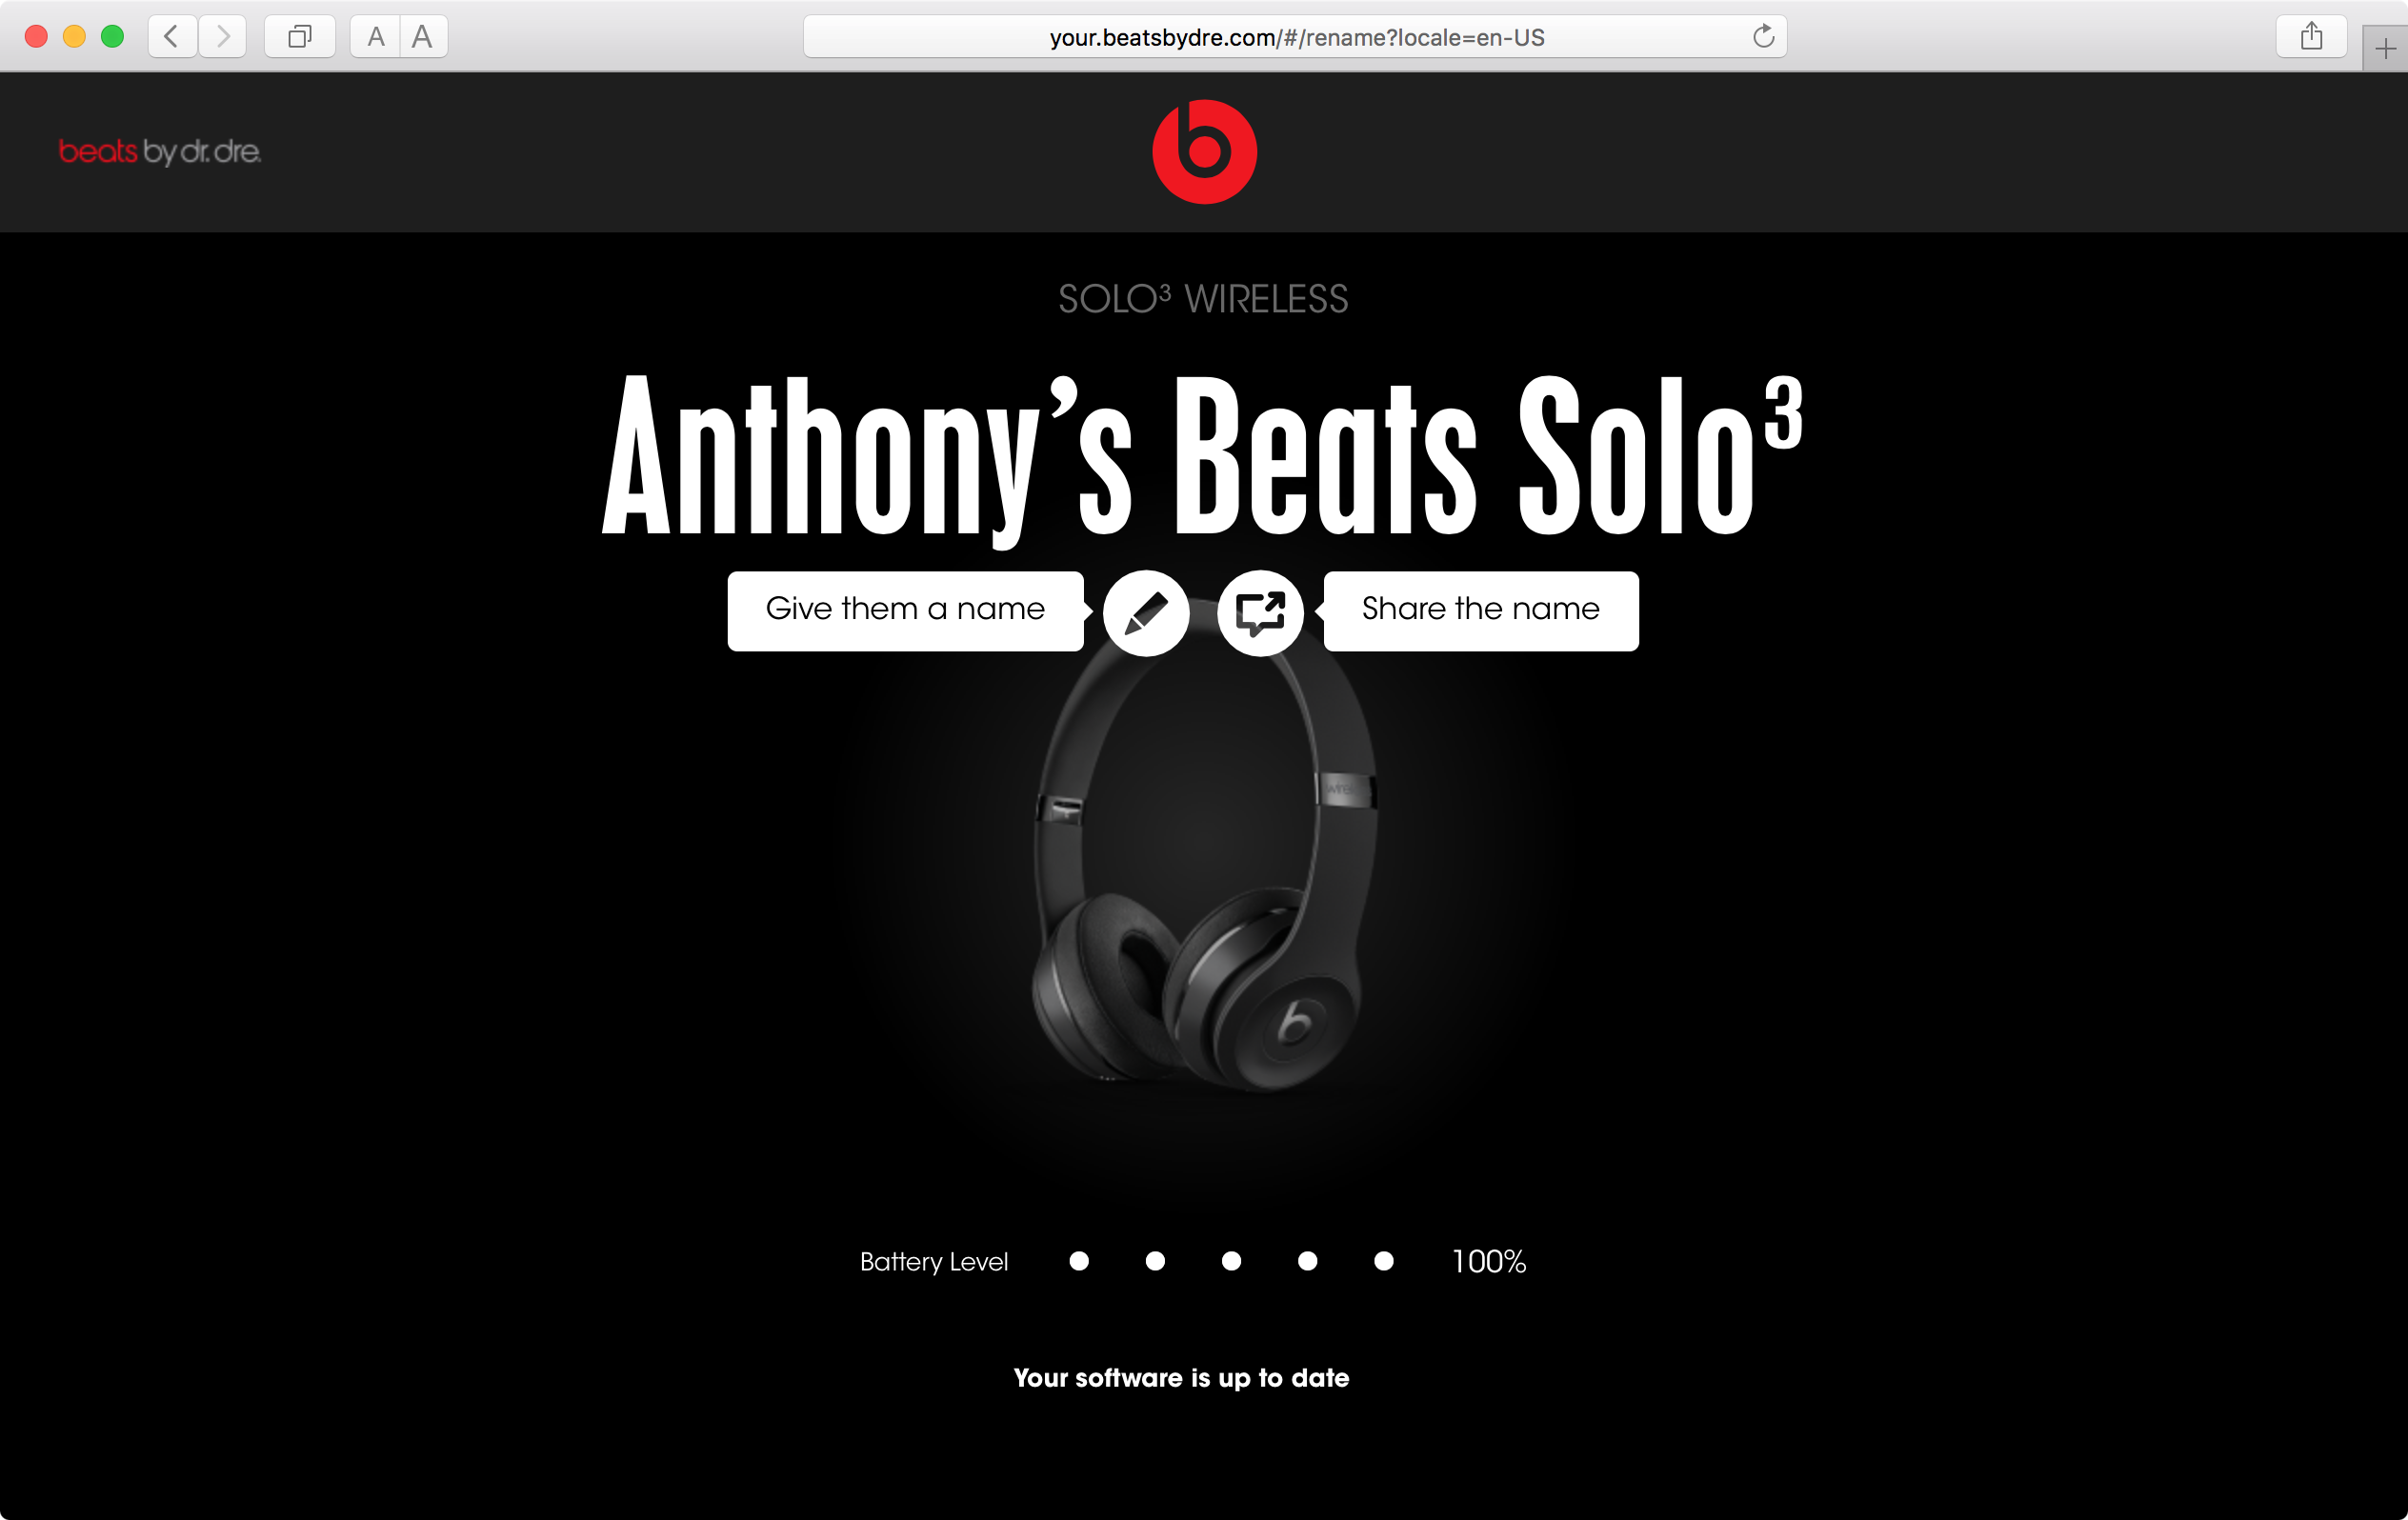 Information about your Beats accessory